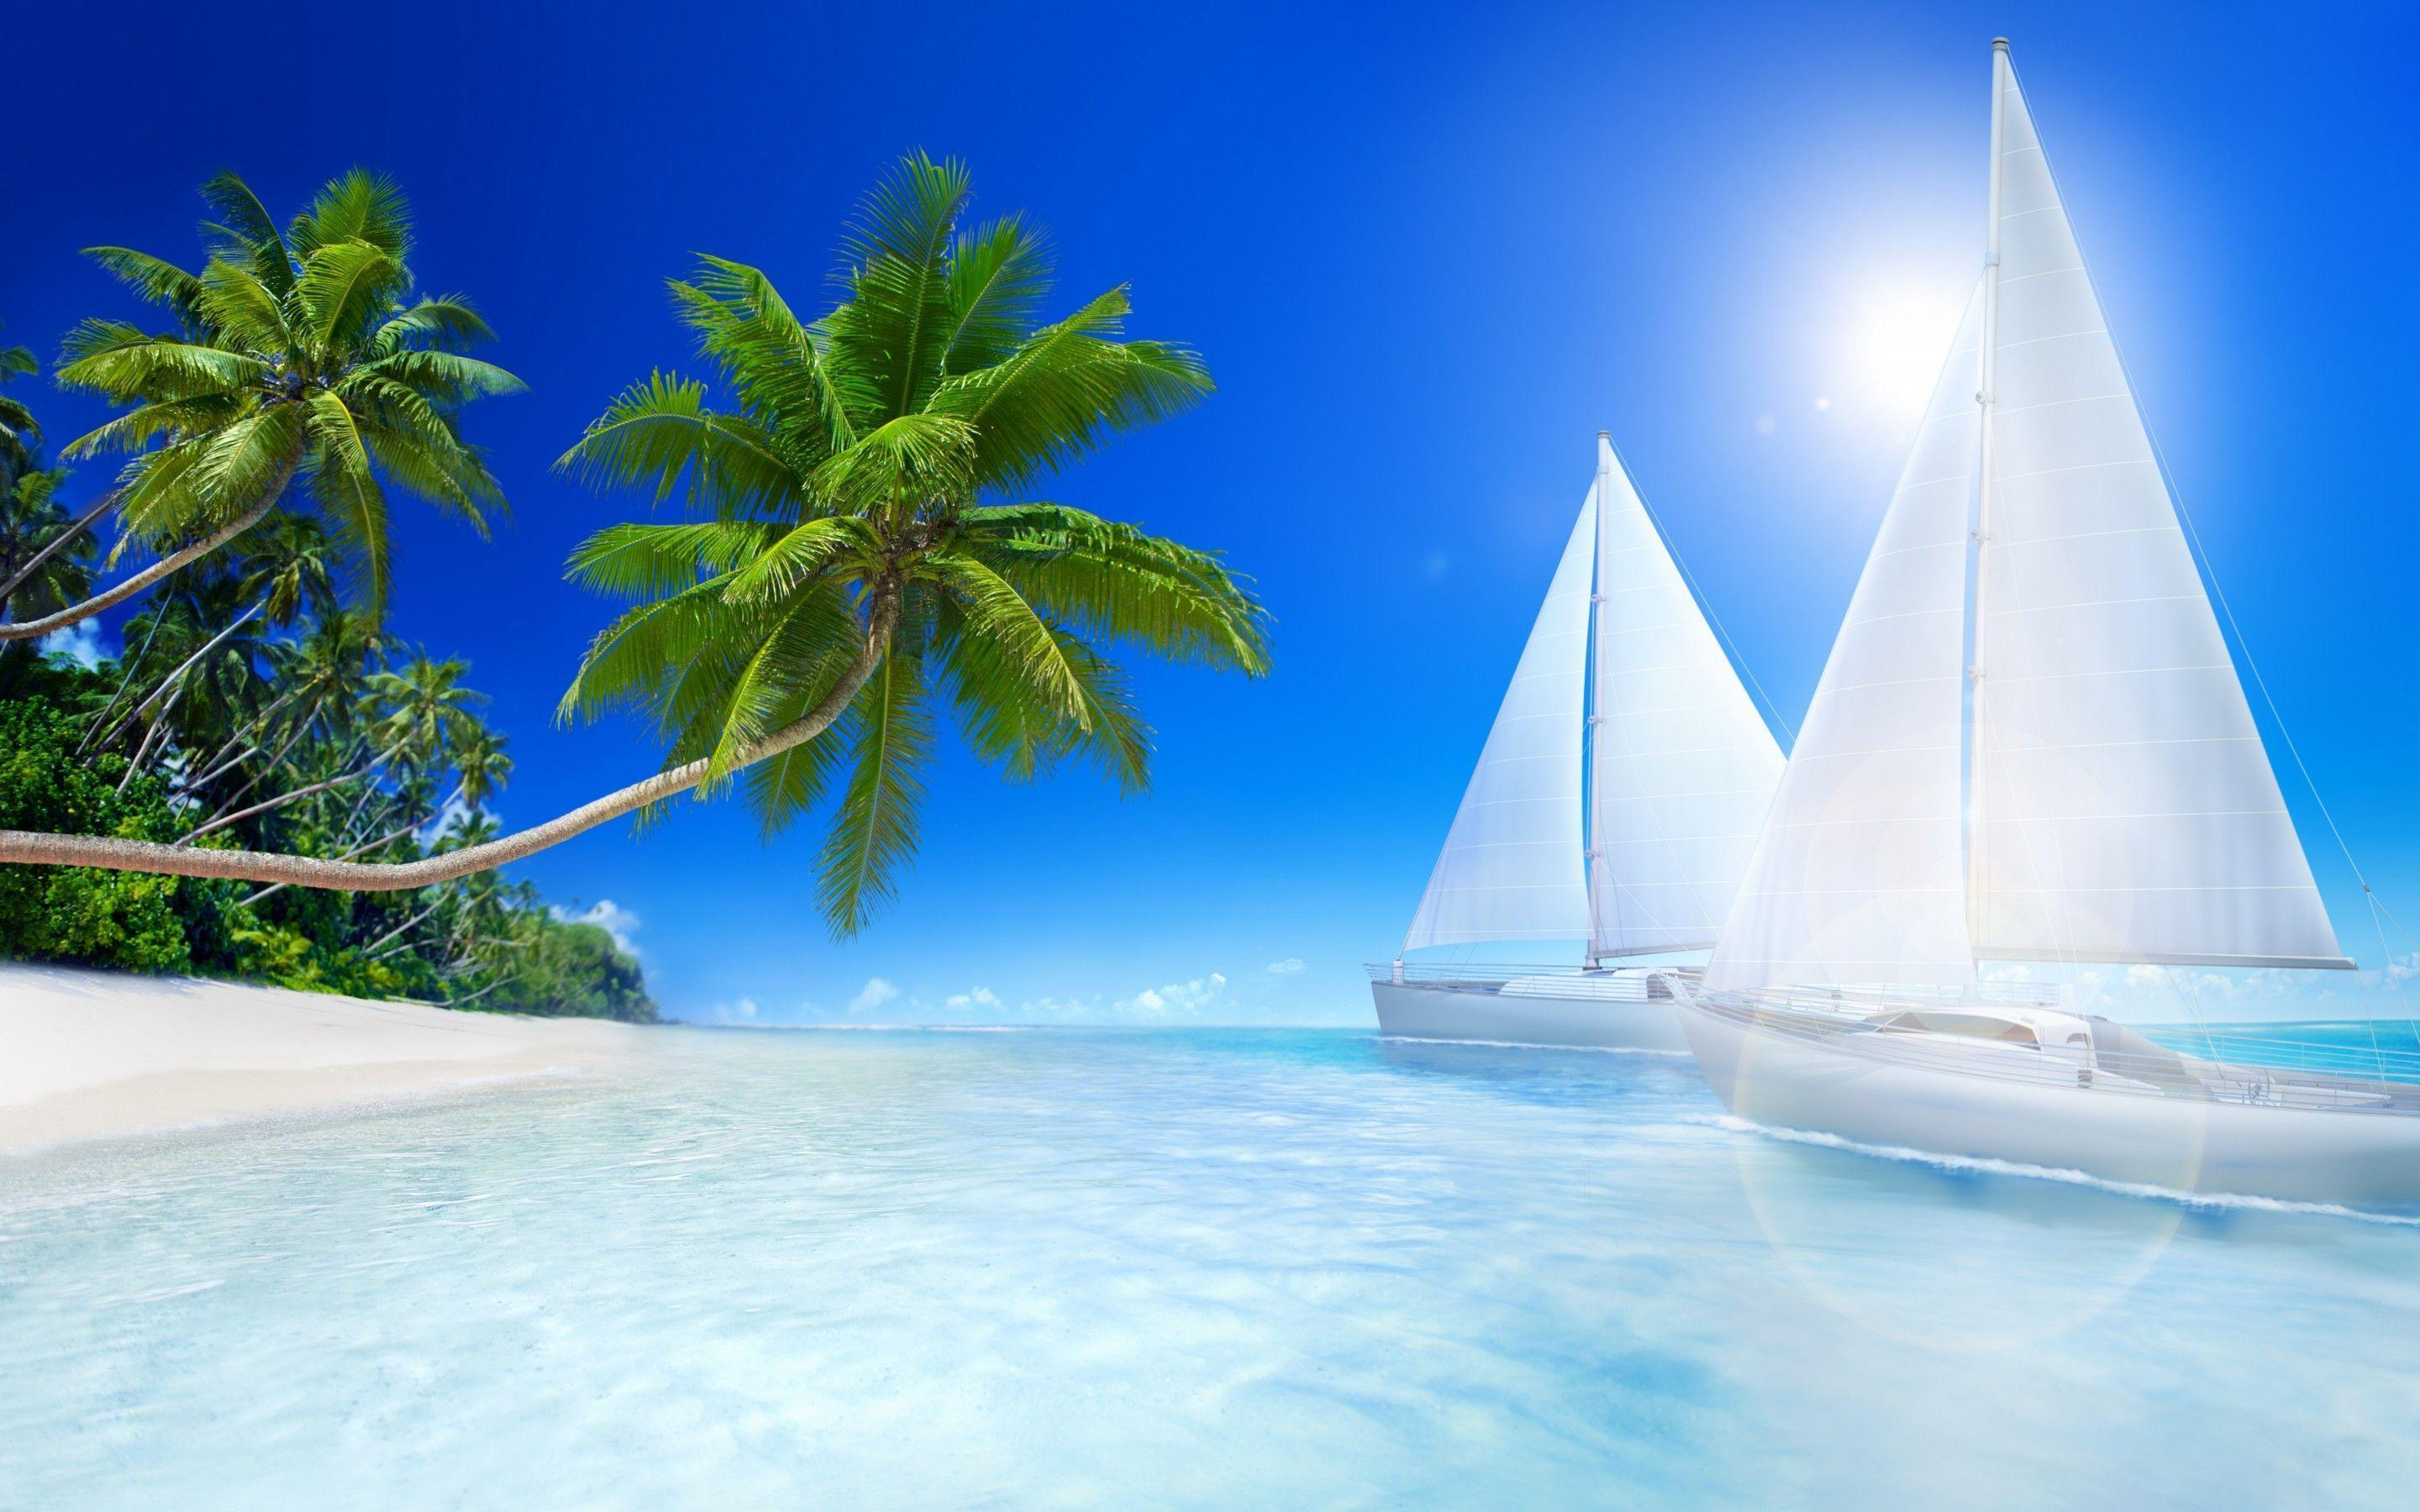 Beaches & Islands HD Wallpapers | Beach Desktop Backgrounds,Stock ...